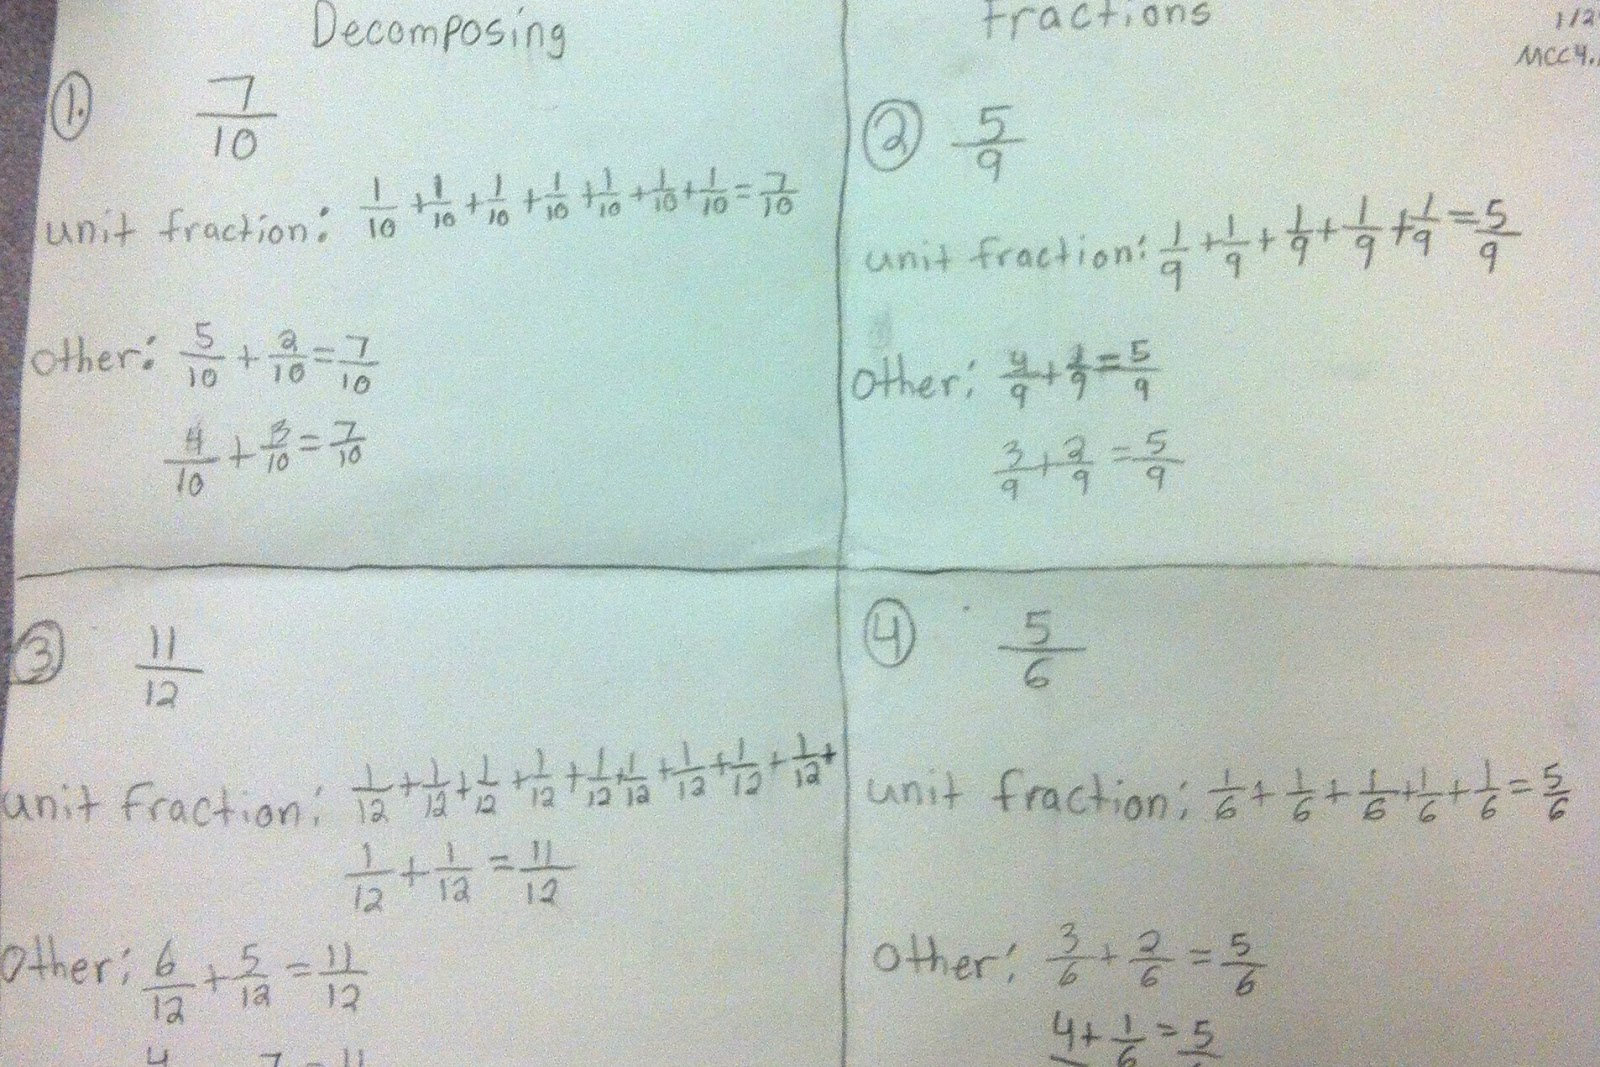 Search Results For Decompose Fractions 4th Grade